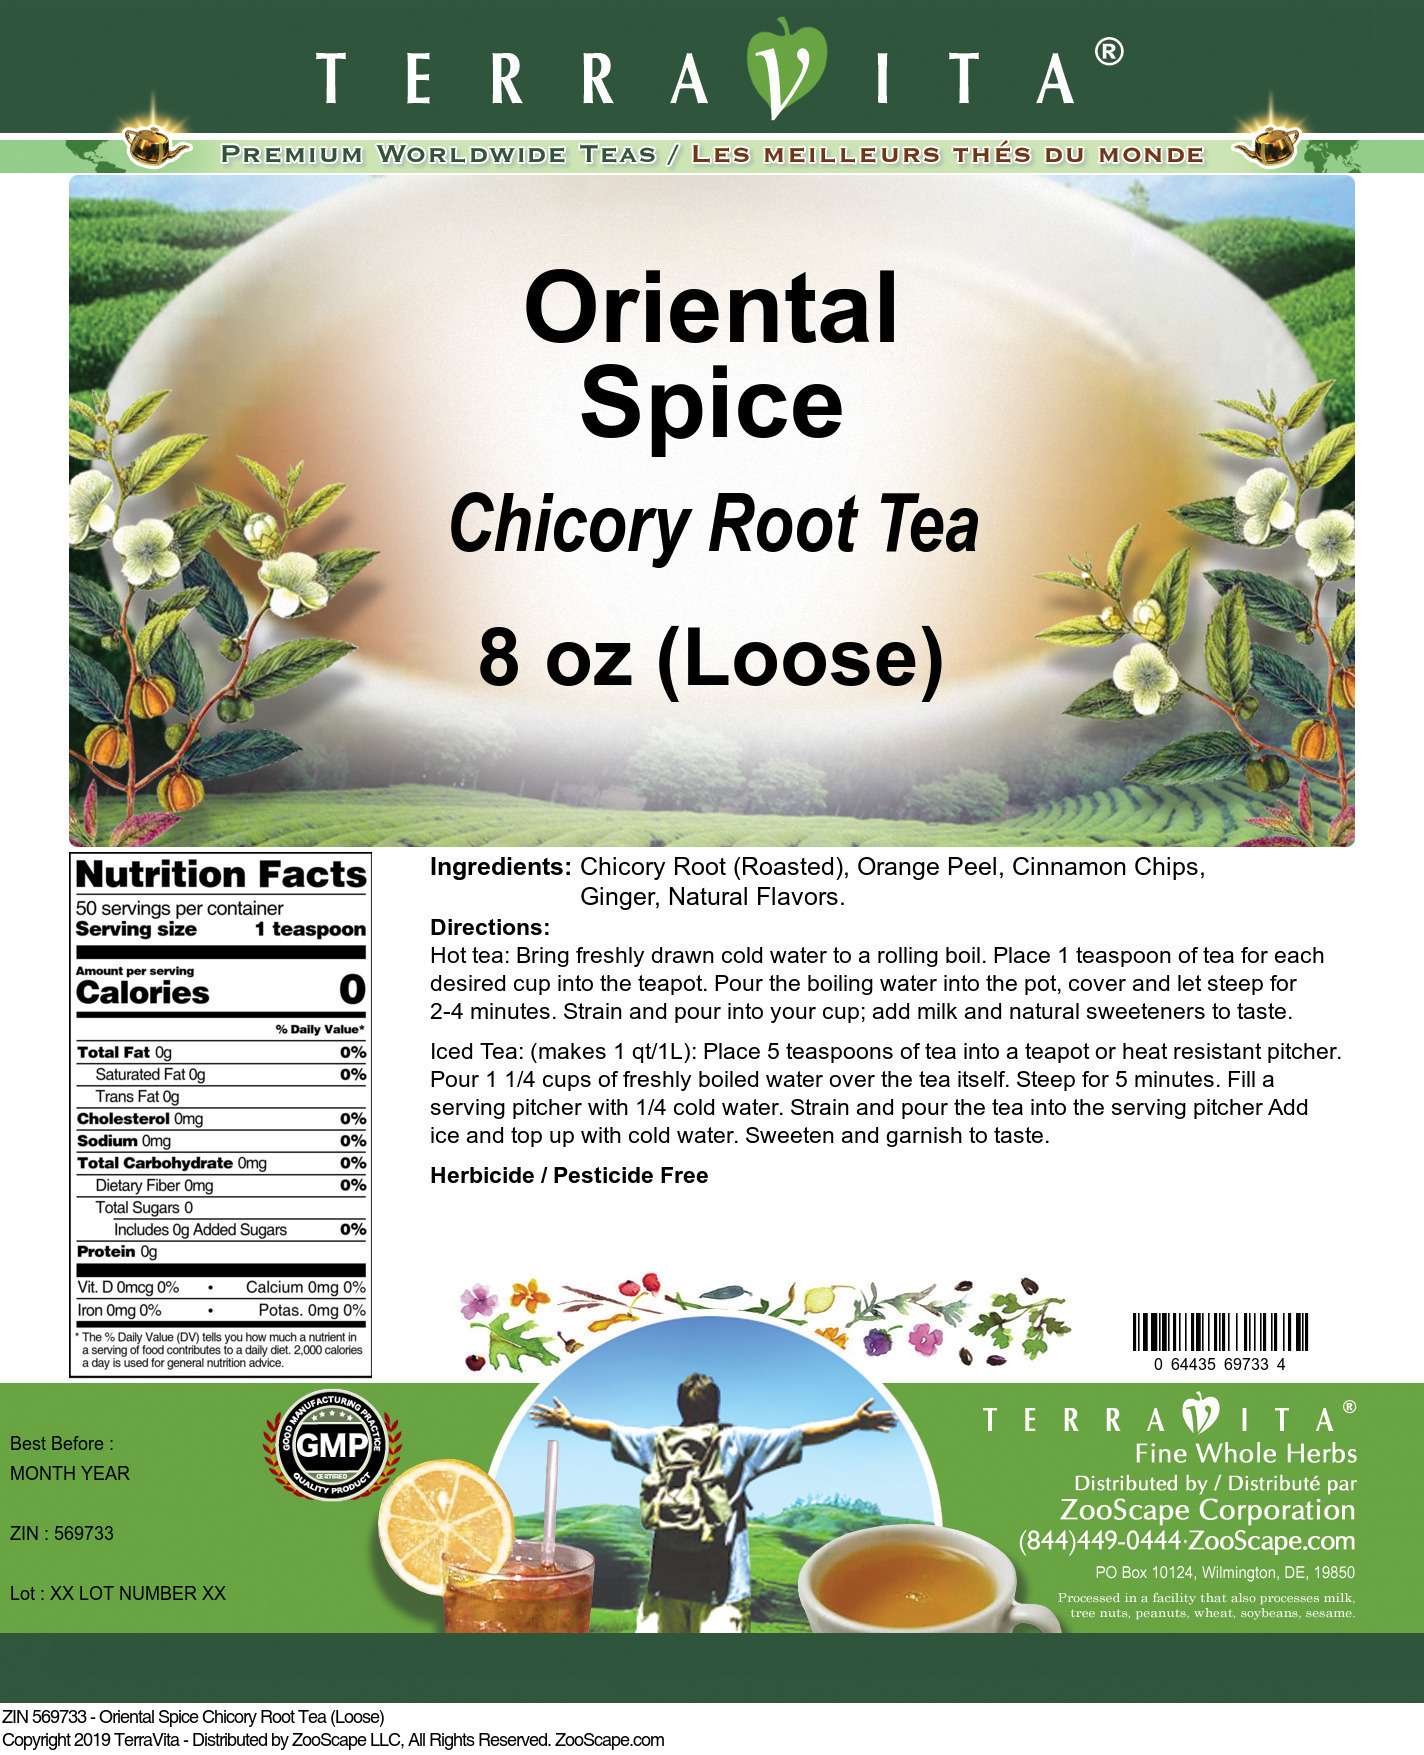 Oriental Spice Chicory Root